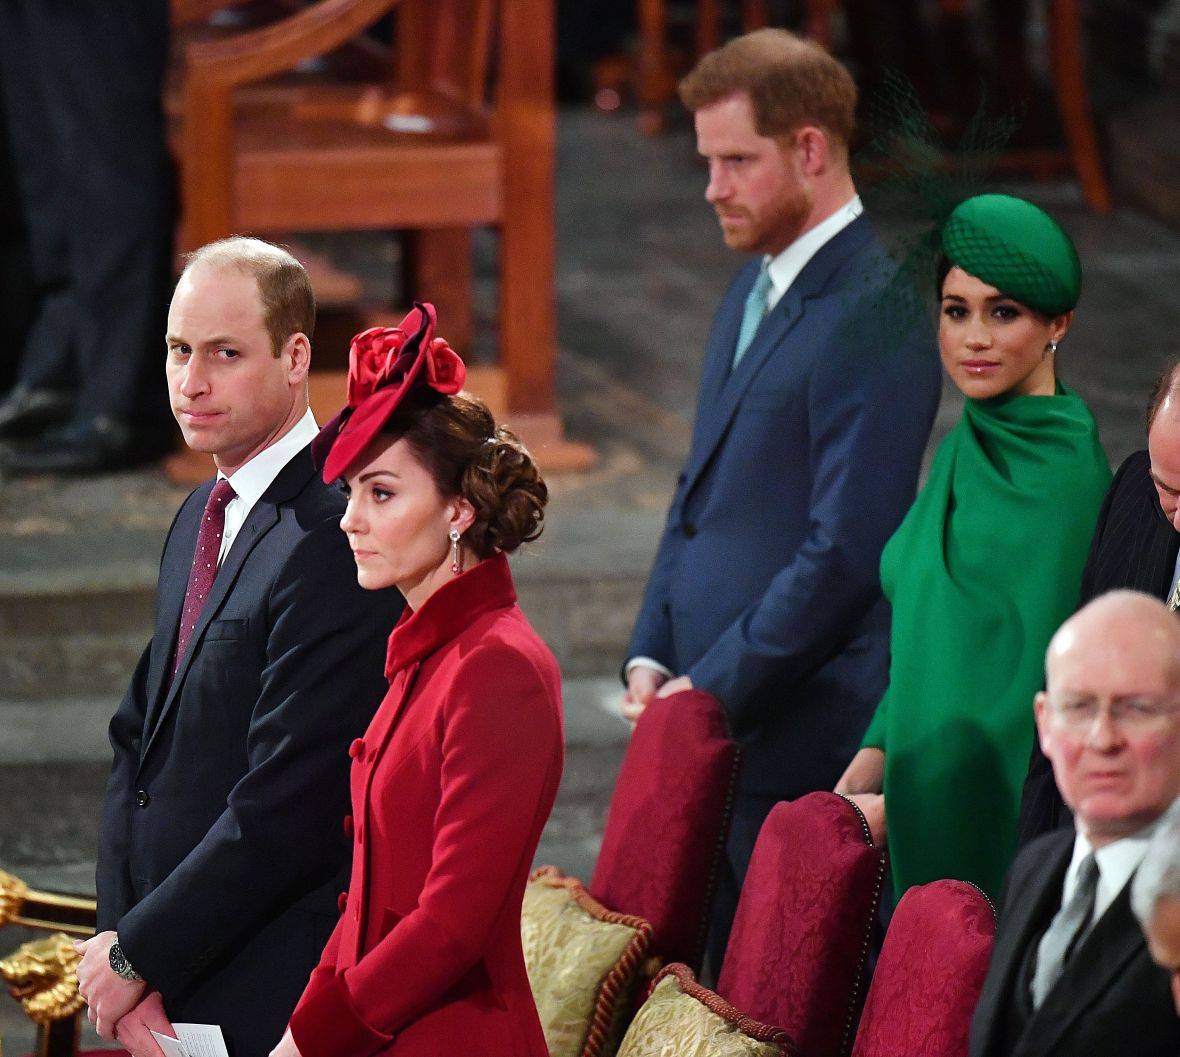 Meghan Markle Prince Harry Prince William and Kate Middleton Reunite Commonwealth Day Service, Westminster Abbey, London, UK - 09 Mar 2020